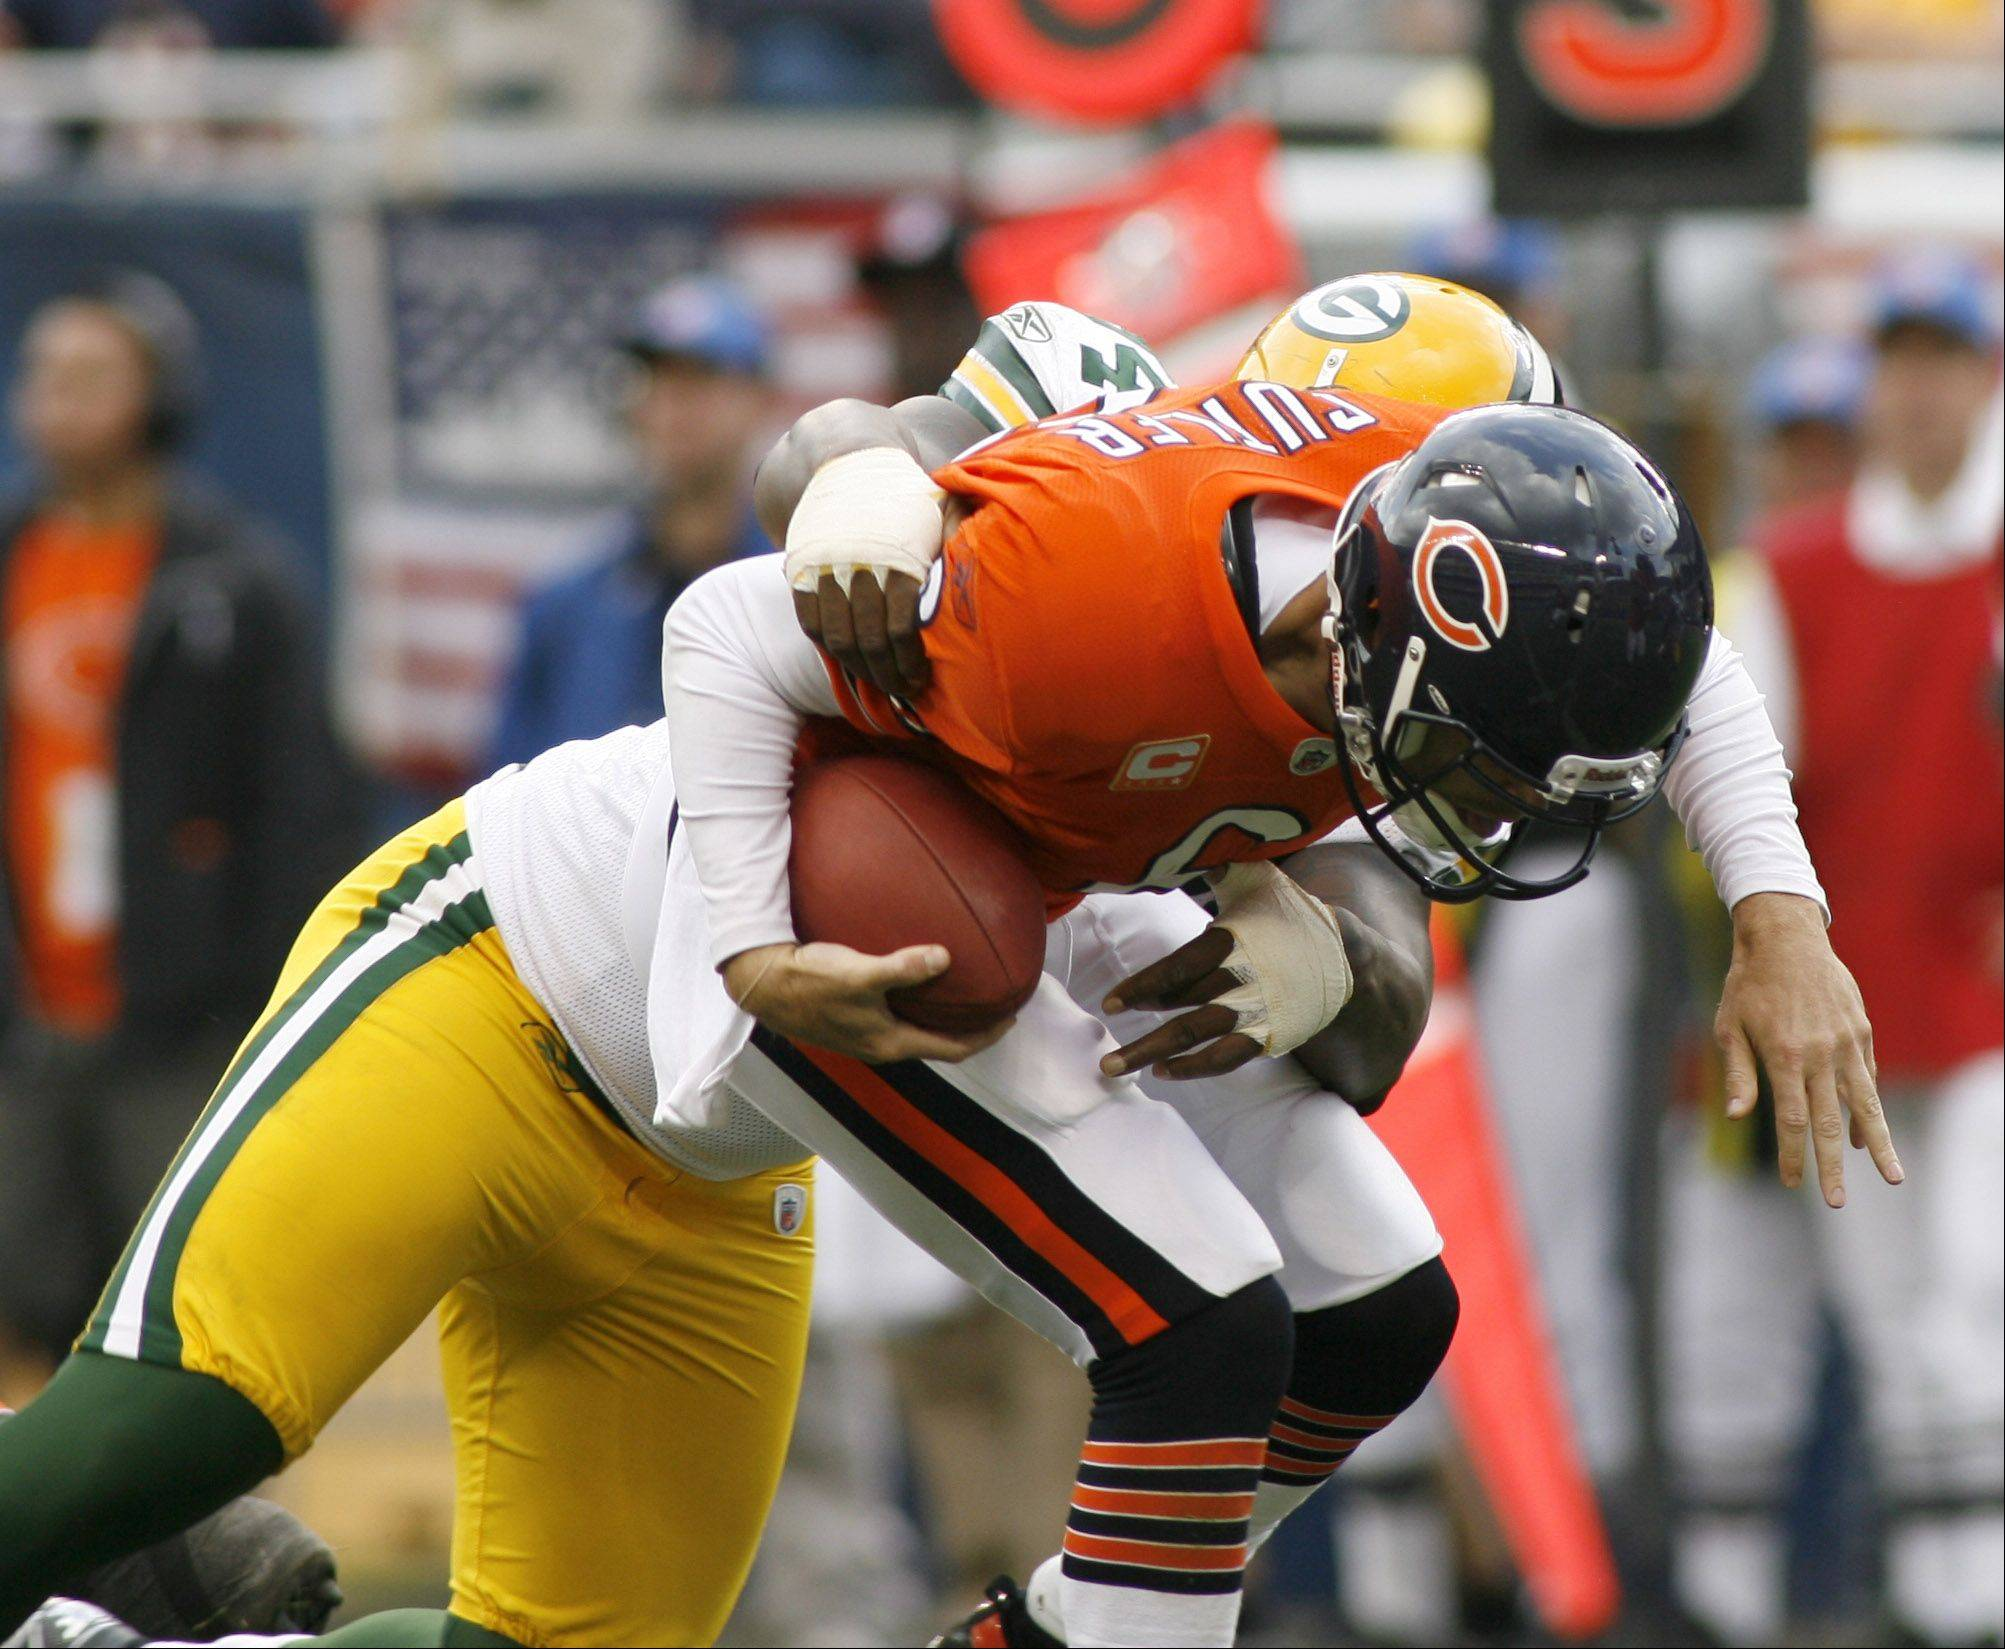 Jay Cutler is sacked during the second half of the Green Bay Packers� 27-17 win over the Chicago Bears on Sunday at Soldier Field. Who deserves the most blame for the loss: Jerry Angelo, Lovie Smith, Mike Martz, Jay Cutler, the receivers or the offensive line? Tell us who�s to blame?